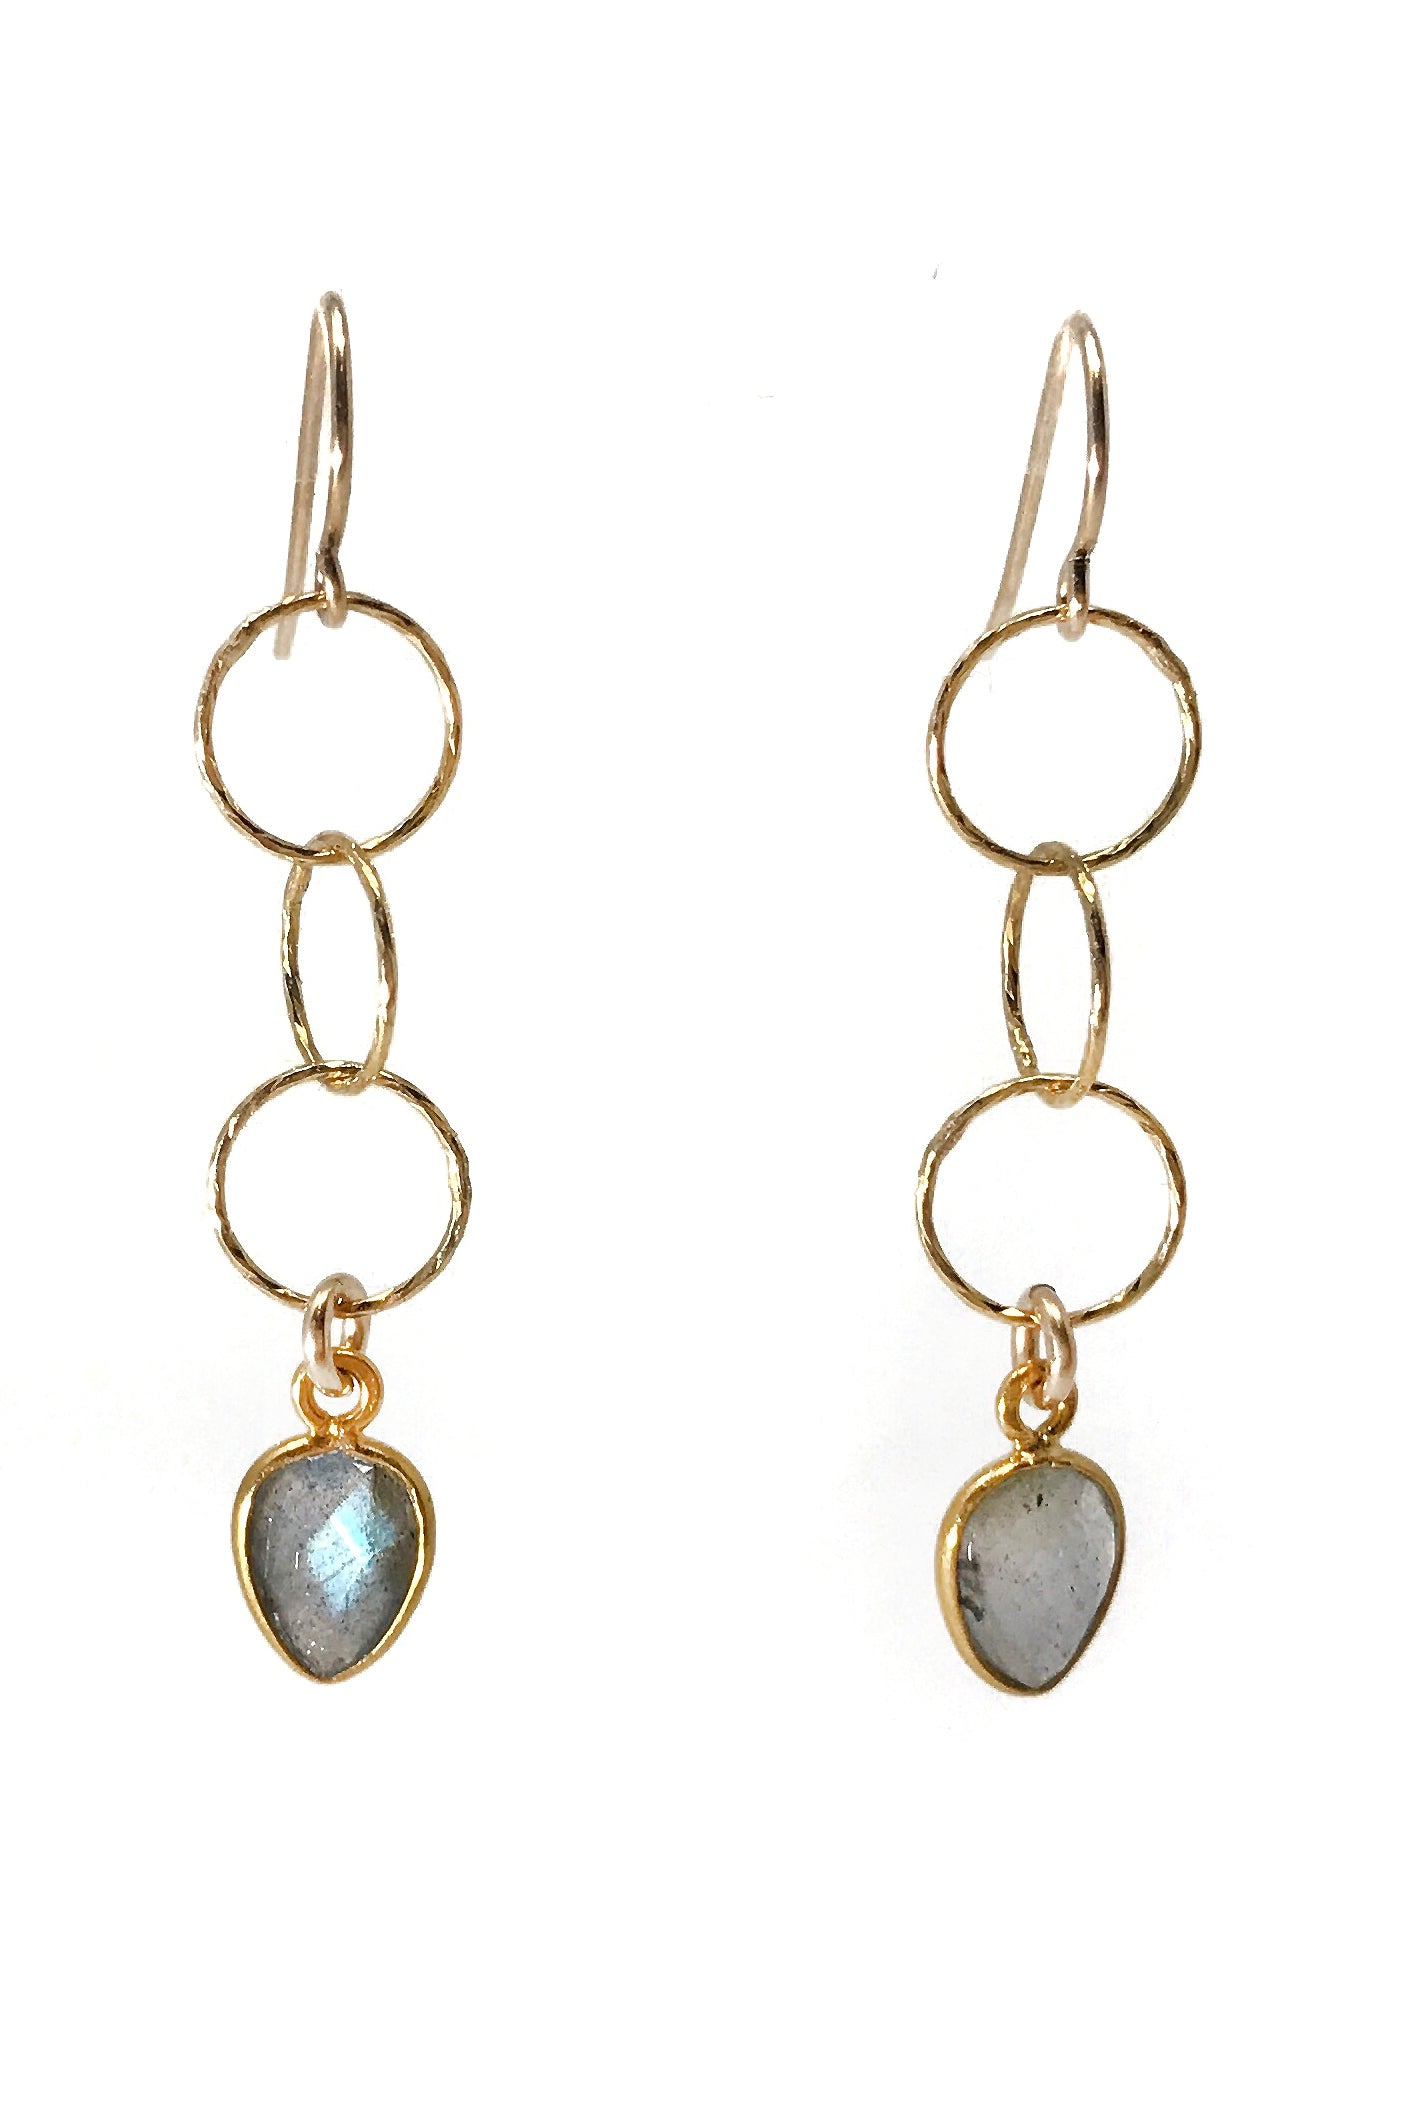 Longevity Labradorite Earrings